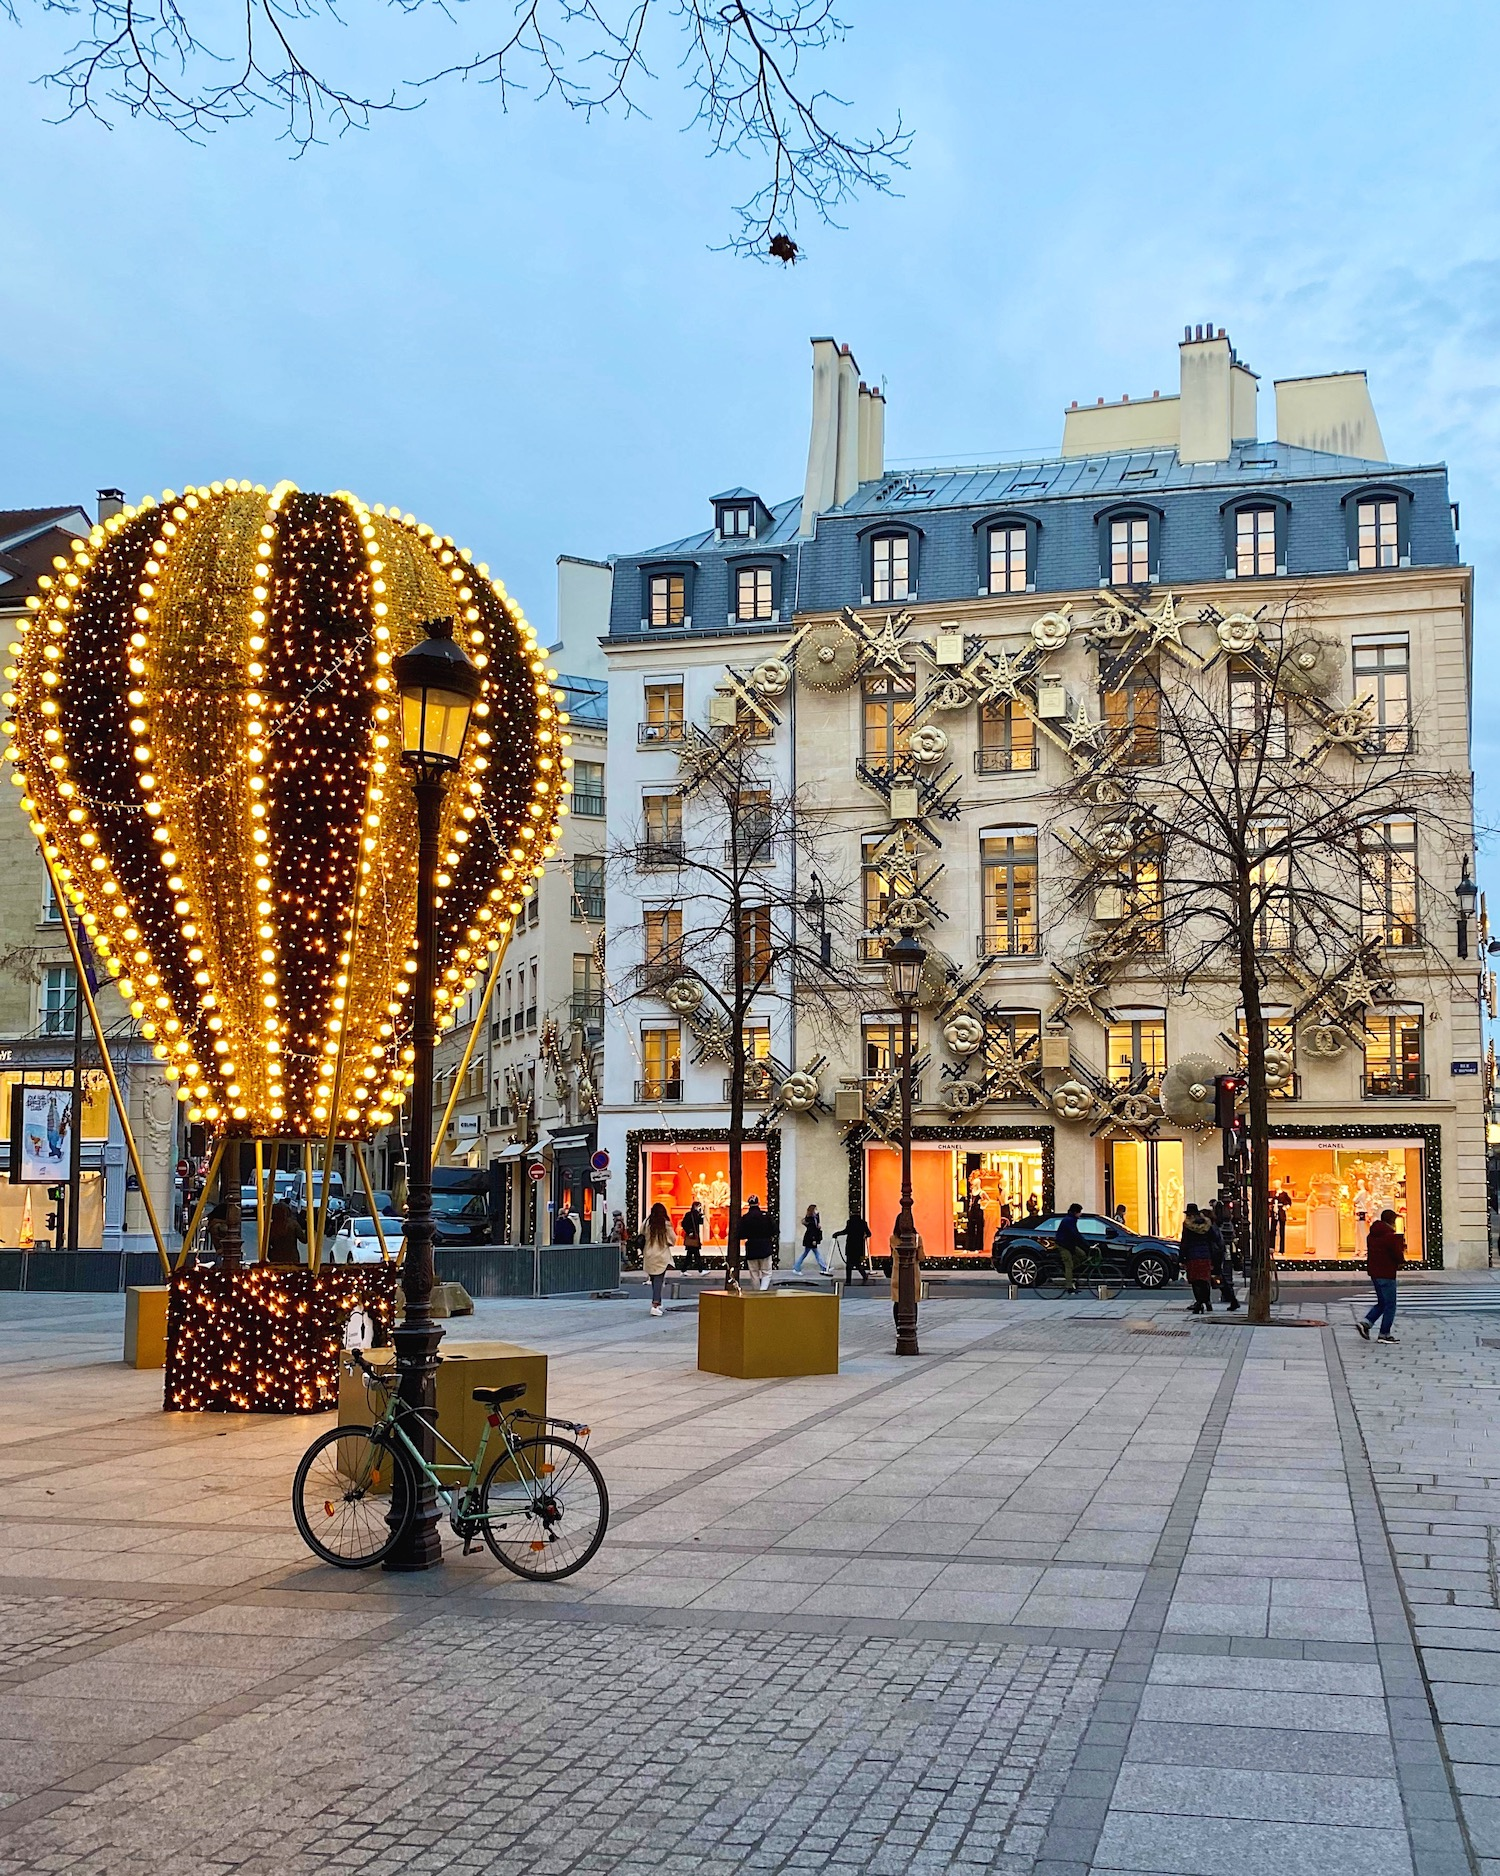 Chanel decorations featuring the second bouquinistes auction